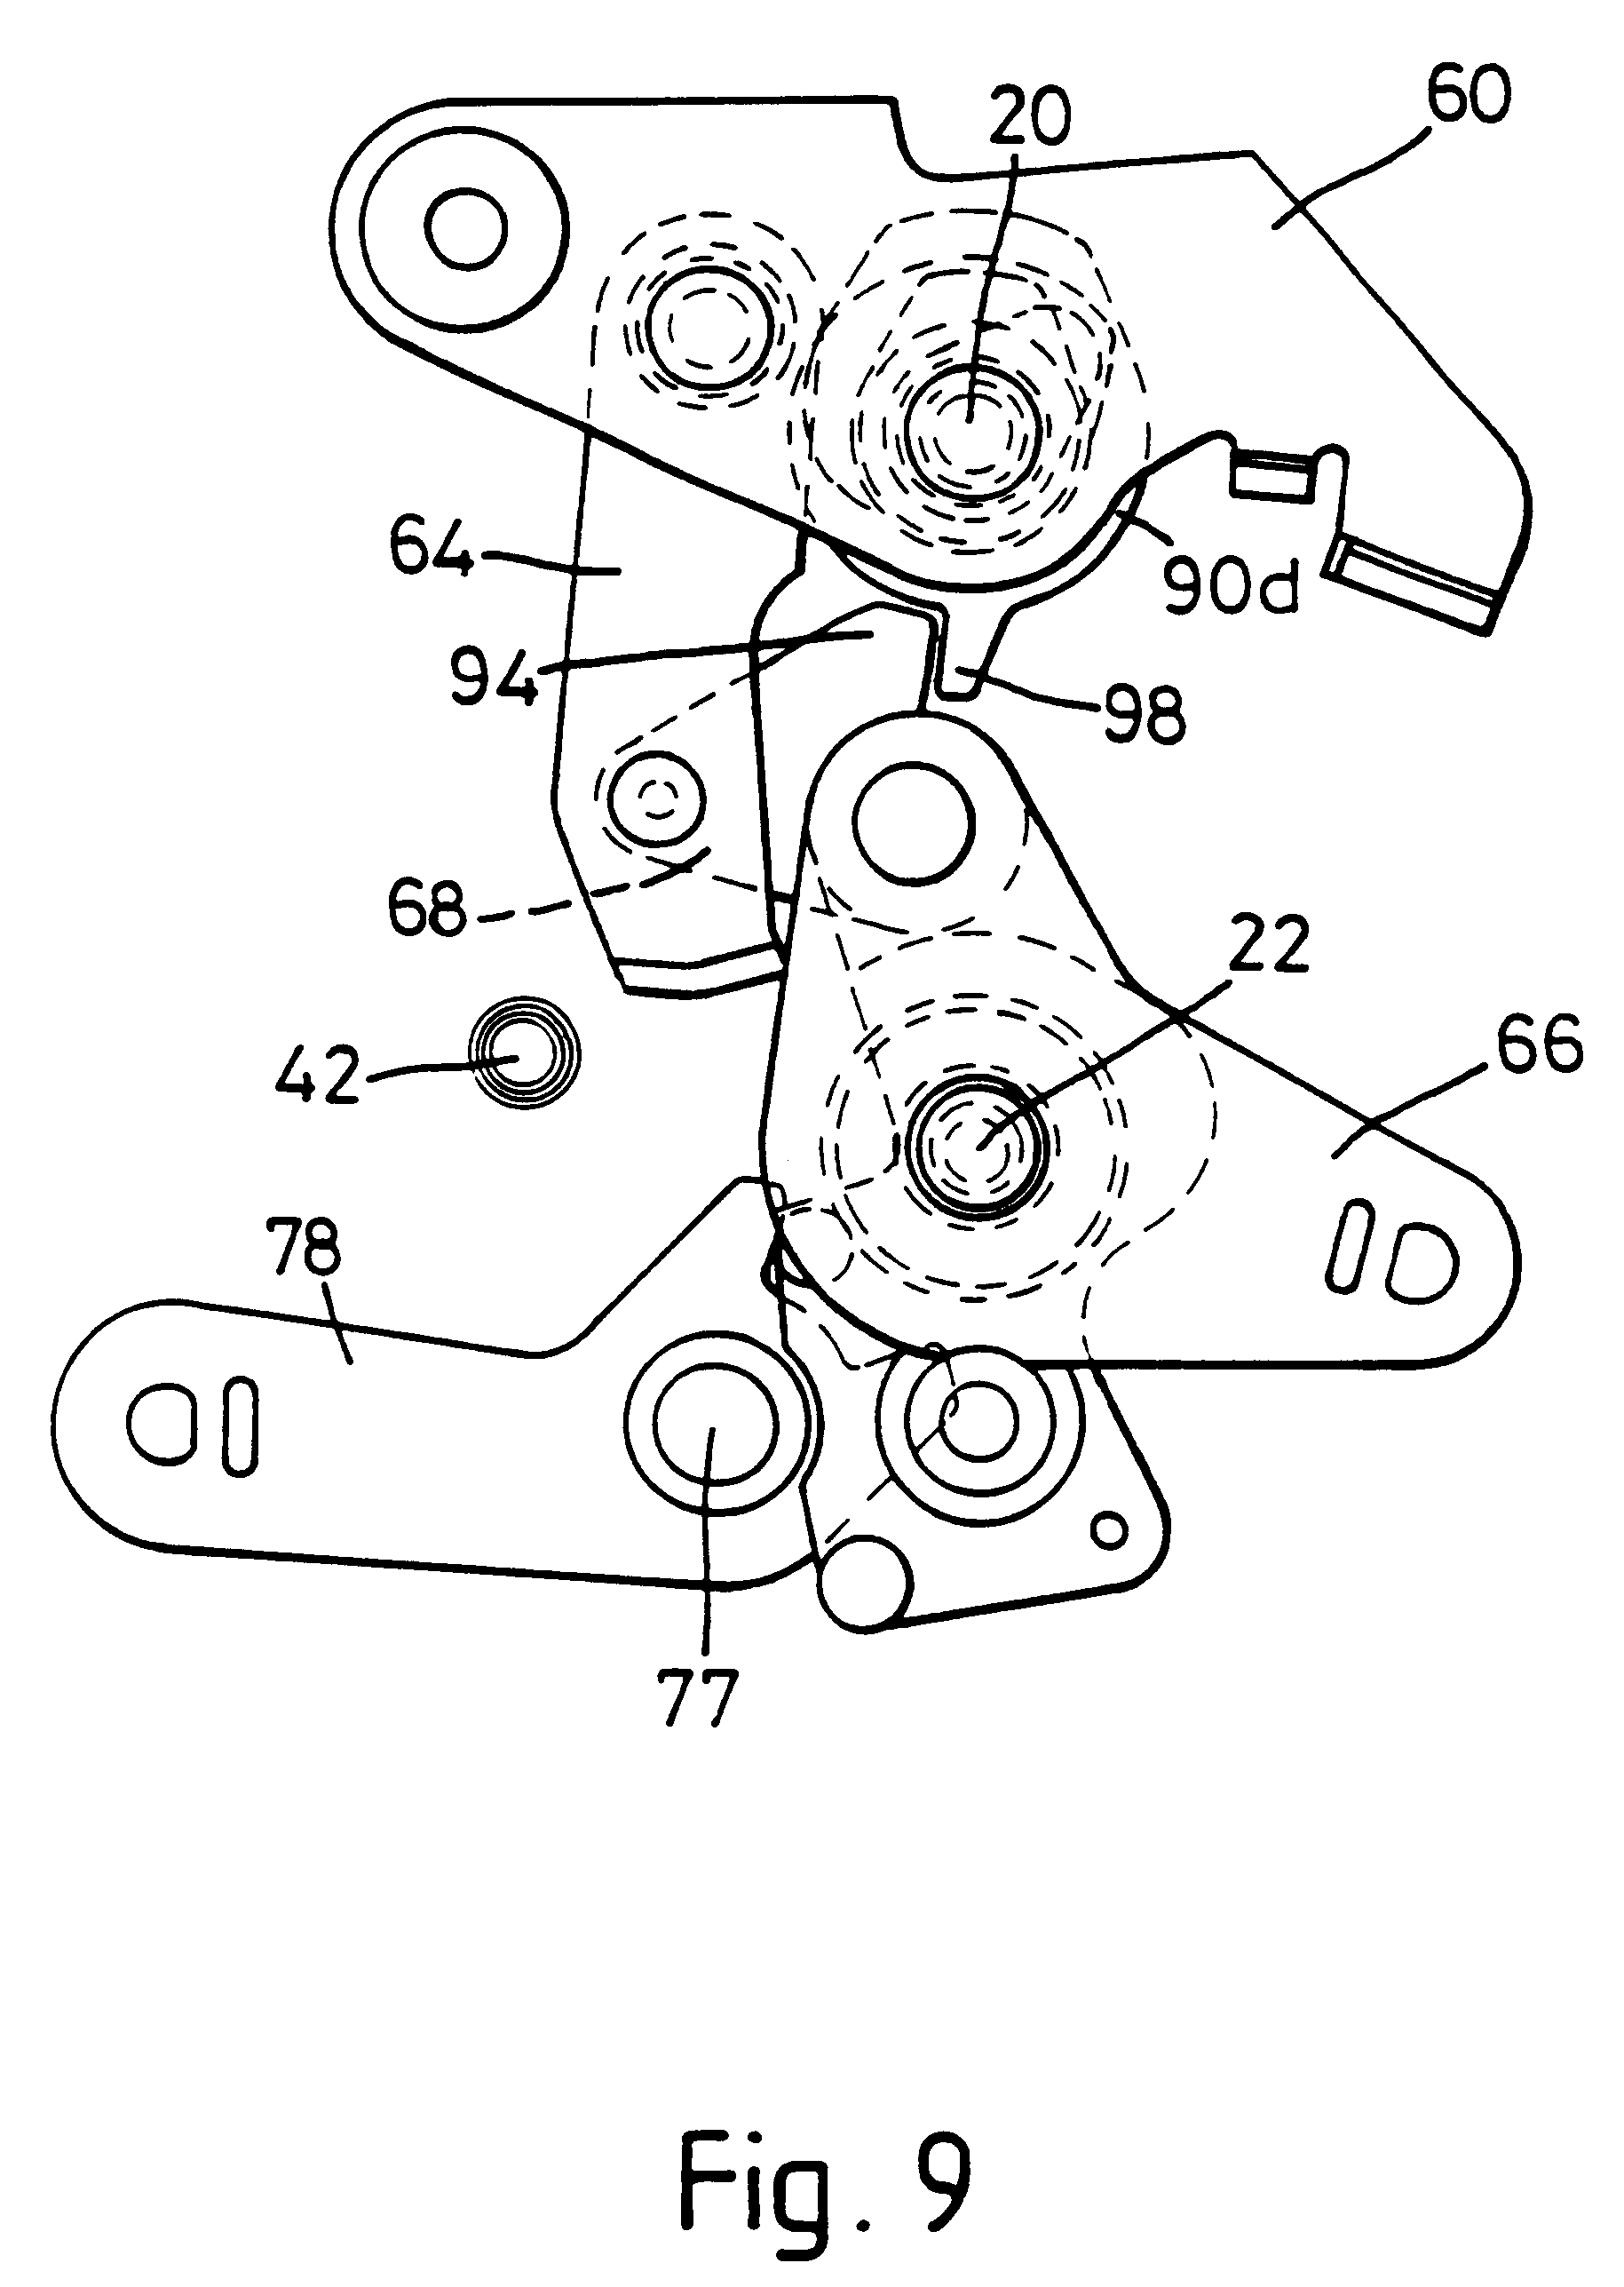 car door lock mechanism. patent drawing car door lock mechanism